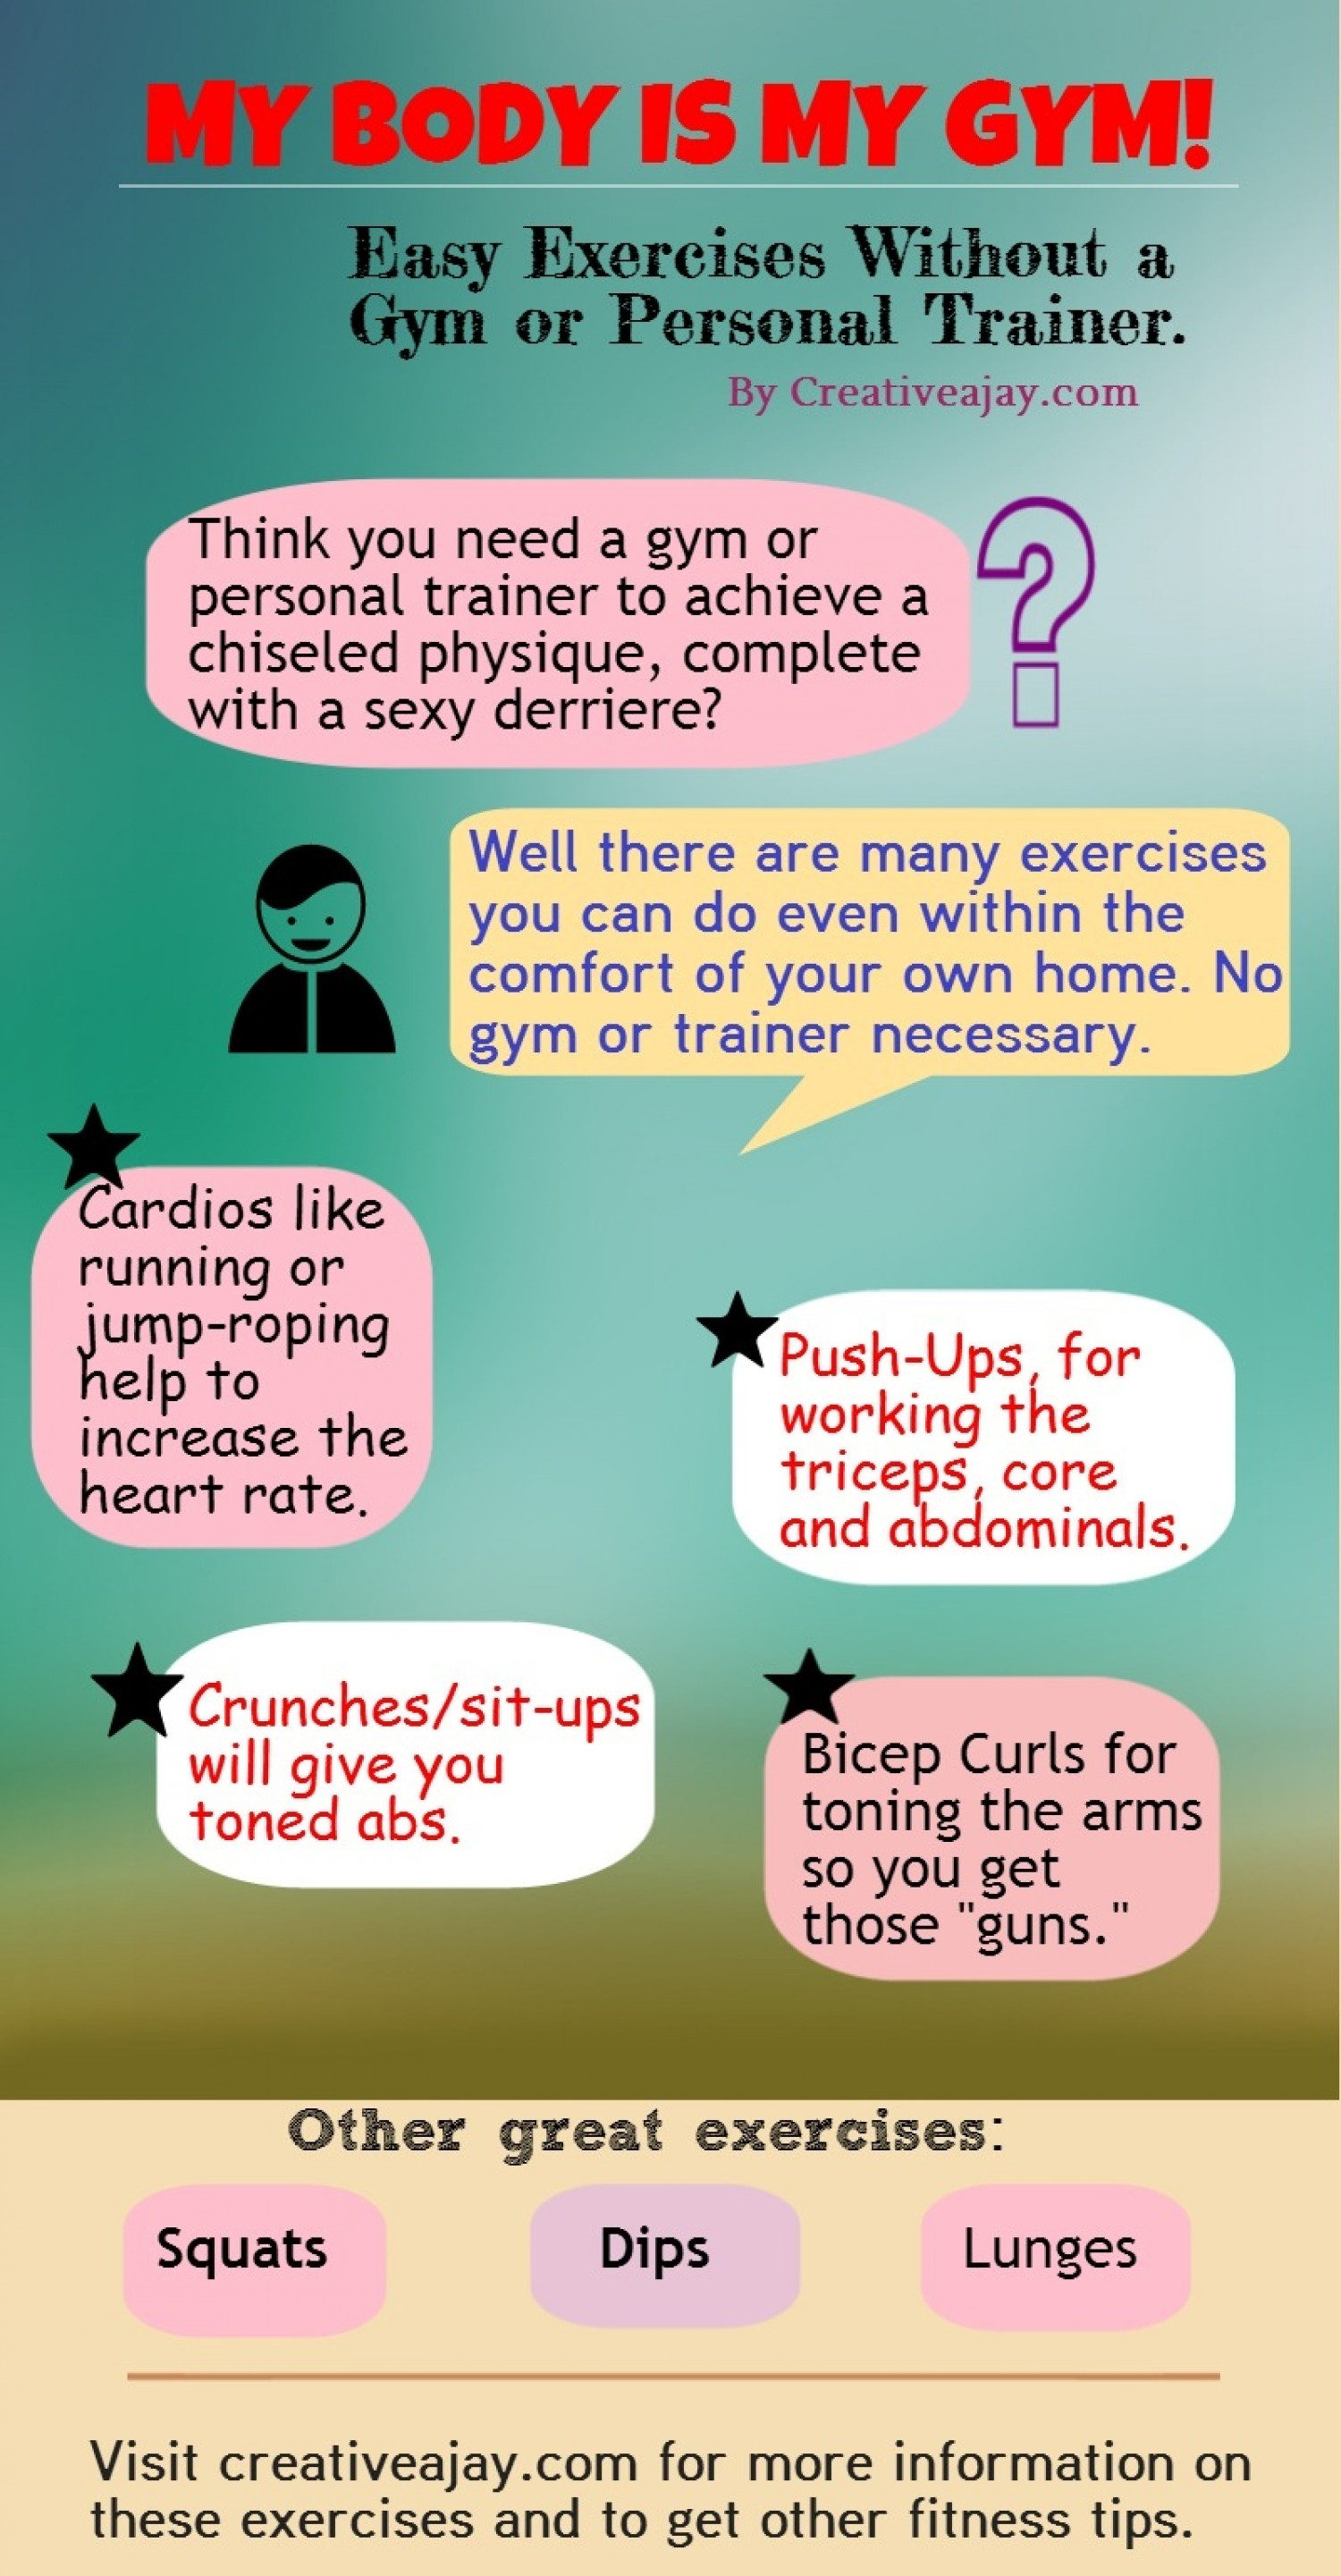 My Body is My Gym! Infographic